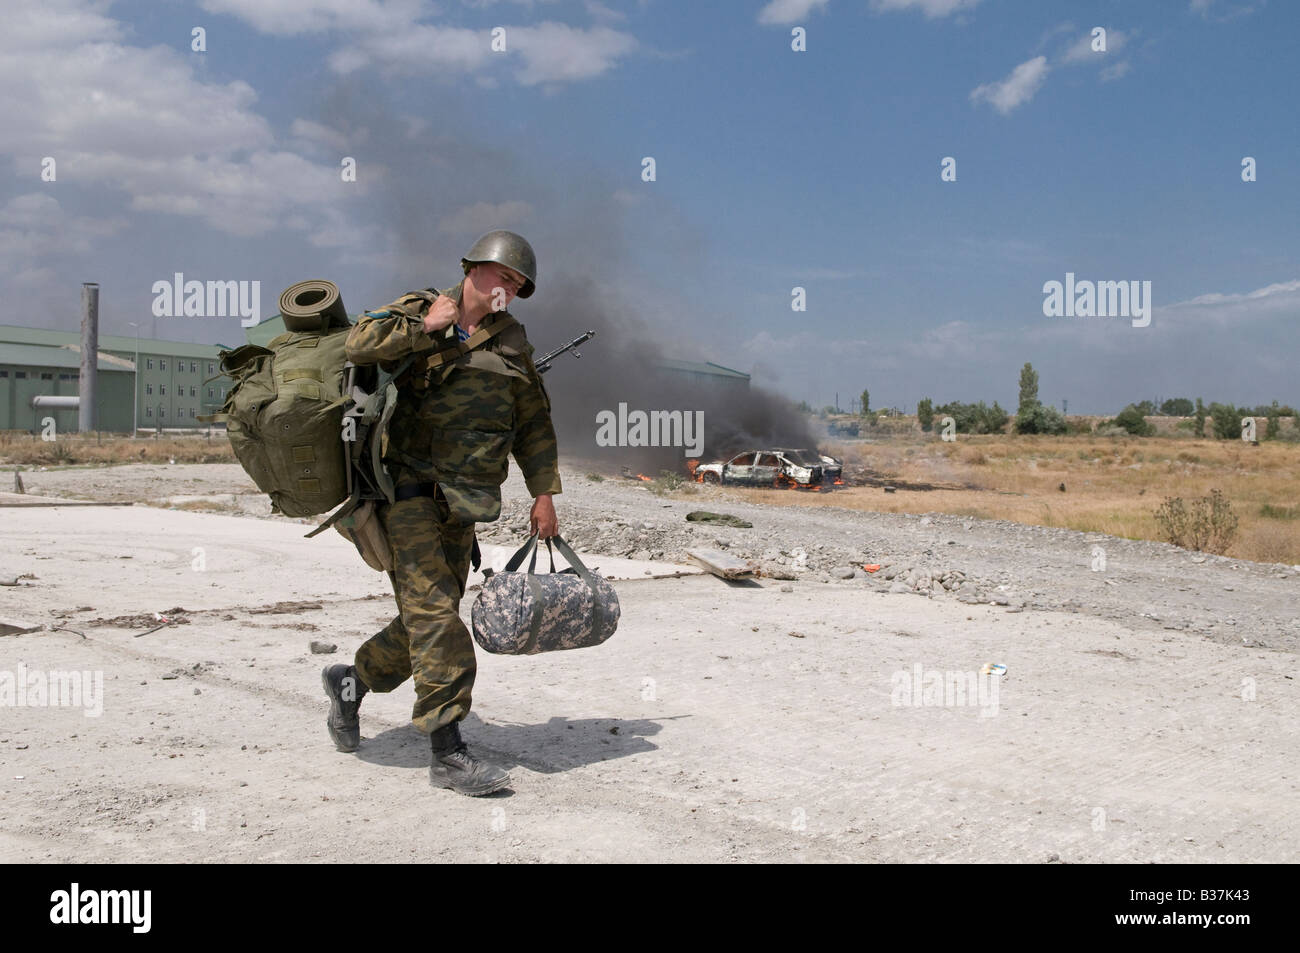 A Russian soldier carrying personal equipment near the town of Gori during the Russo-Georgian War August 2008 - Stock Image